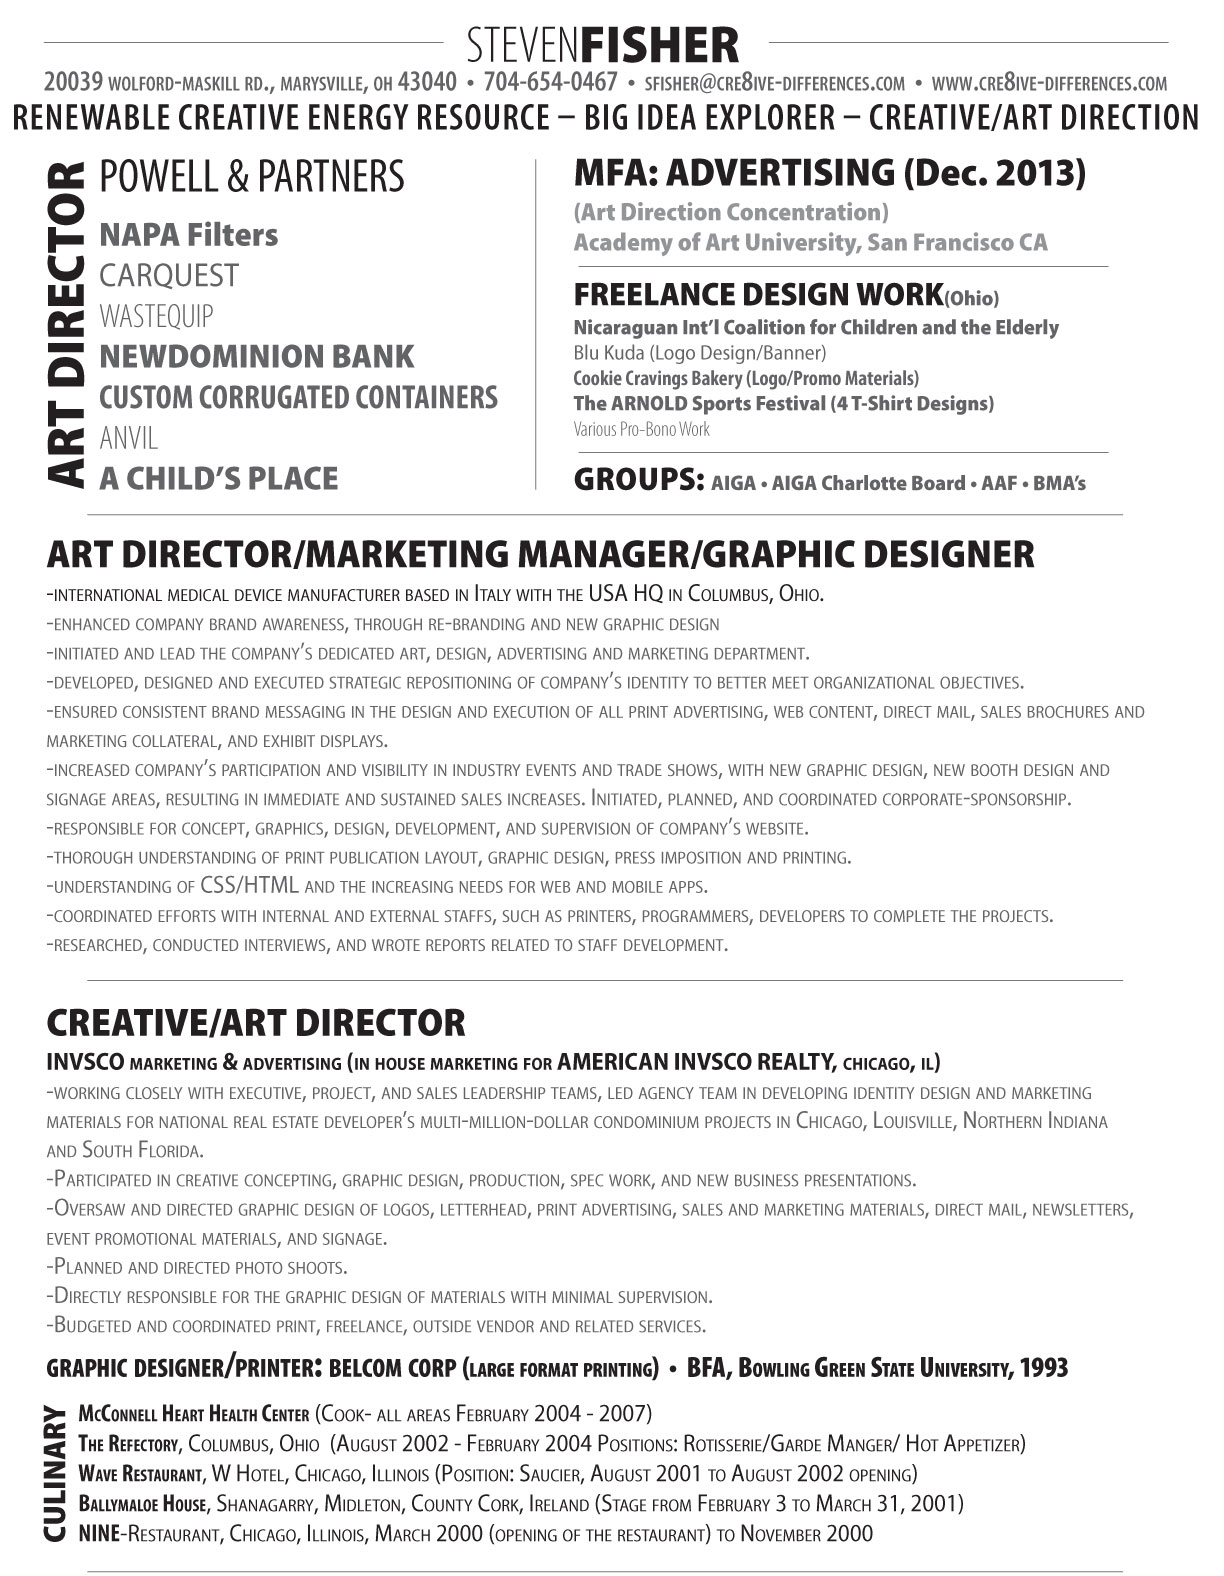 steven fisher director cv 2013 cre8ive differences llc